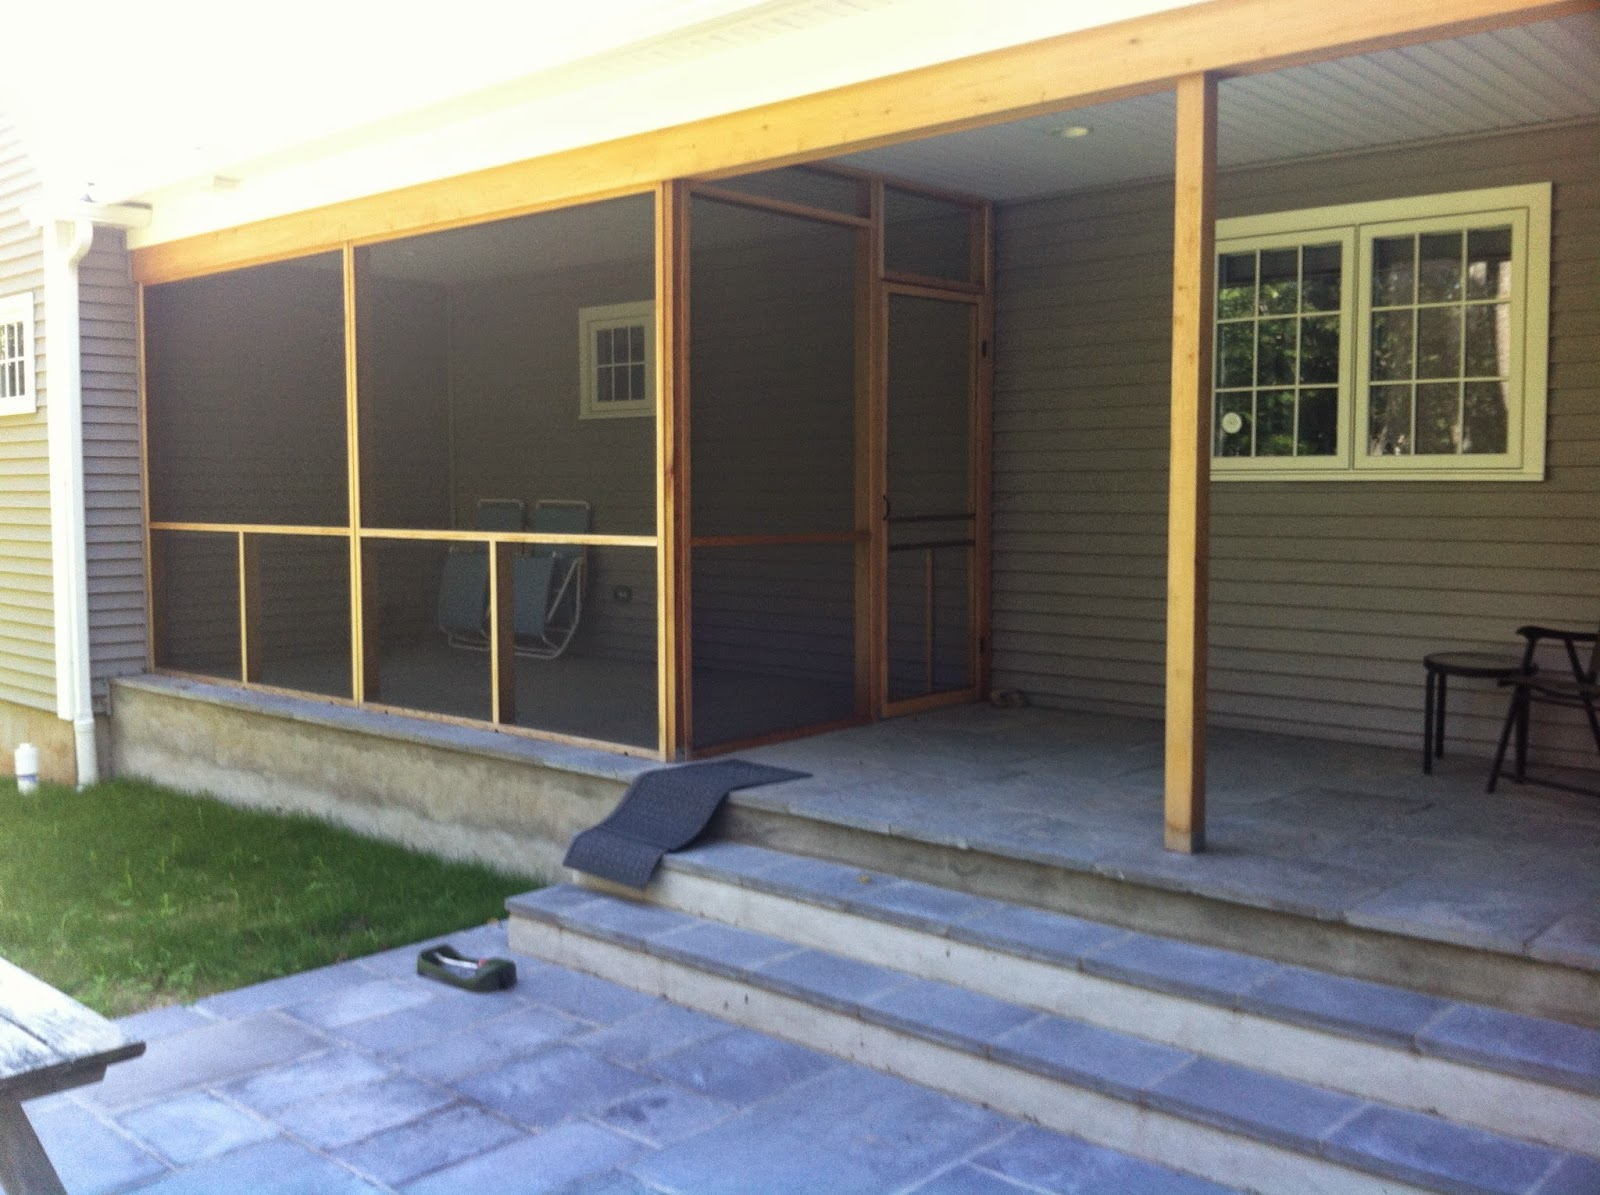 Aluminum screen, nylon screening, bugs, screens, porch, patio, wood, cedar, panels, clean, rot resistant